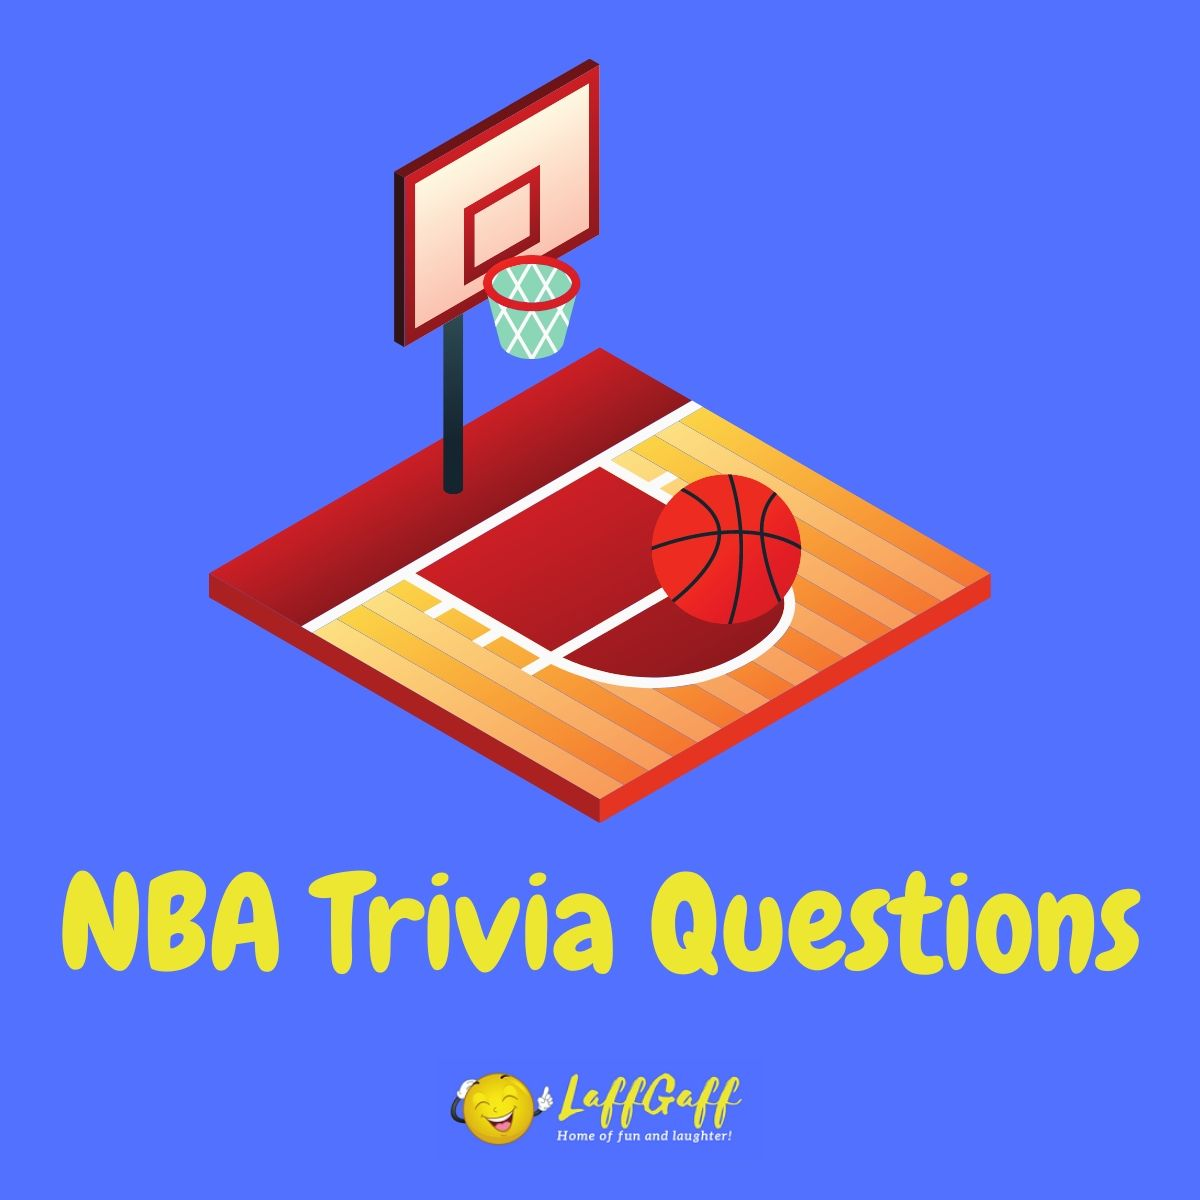 Featured image for a page of NBA trivia questions and answers.